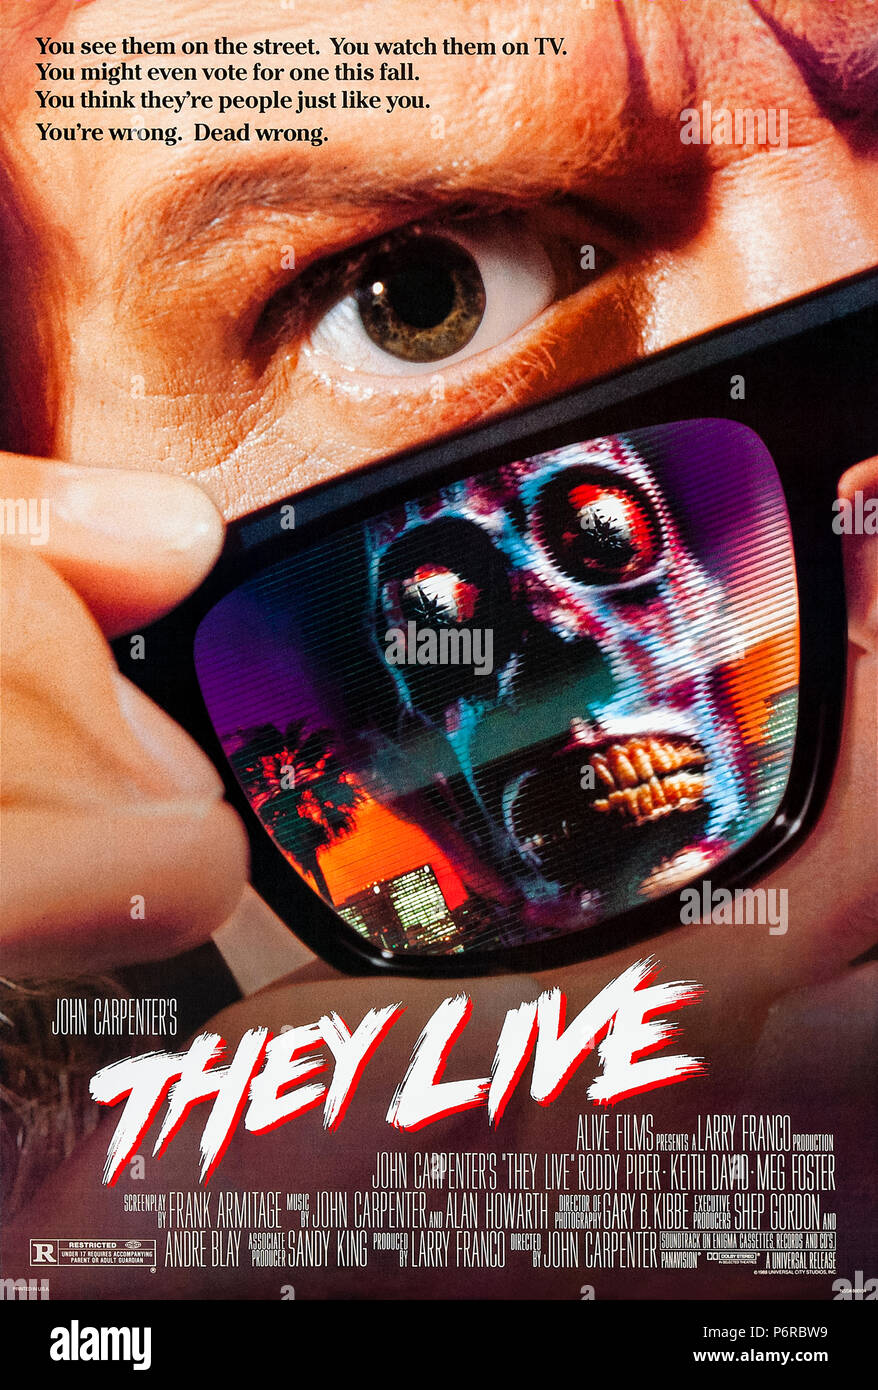 They Live (1988) directed by John Carpenter and starring Roddy Piper, Keith David and Meg Foster. An unnamed drifter finds a pair of sunglasses that reveal the truth about the world and how it manipulates and rewards its inhabitants. - Stock Image